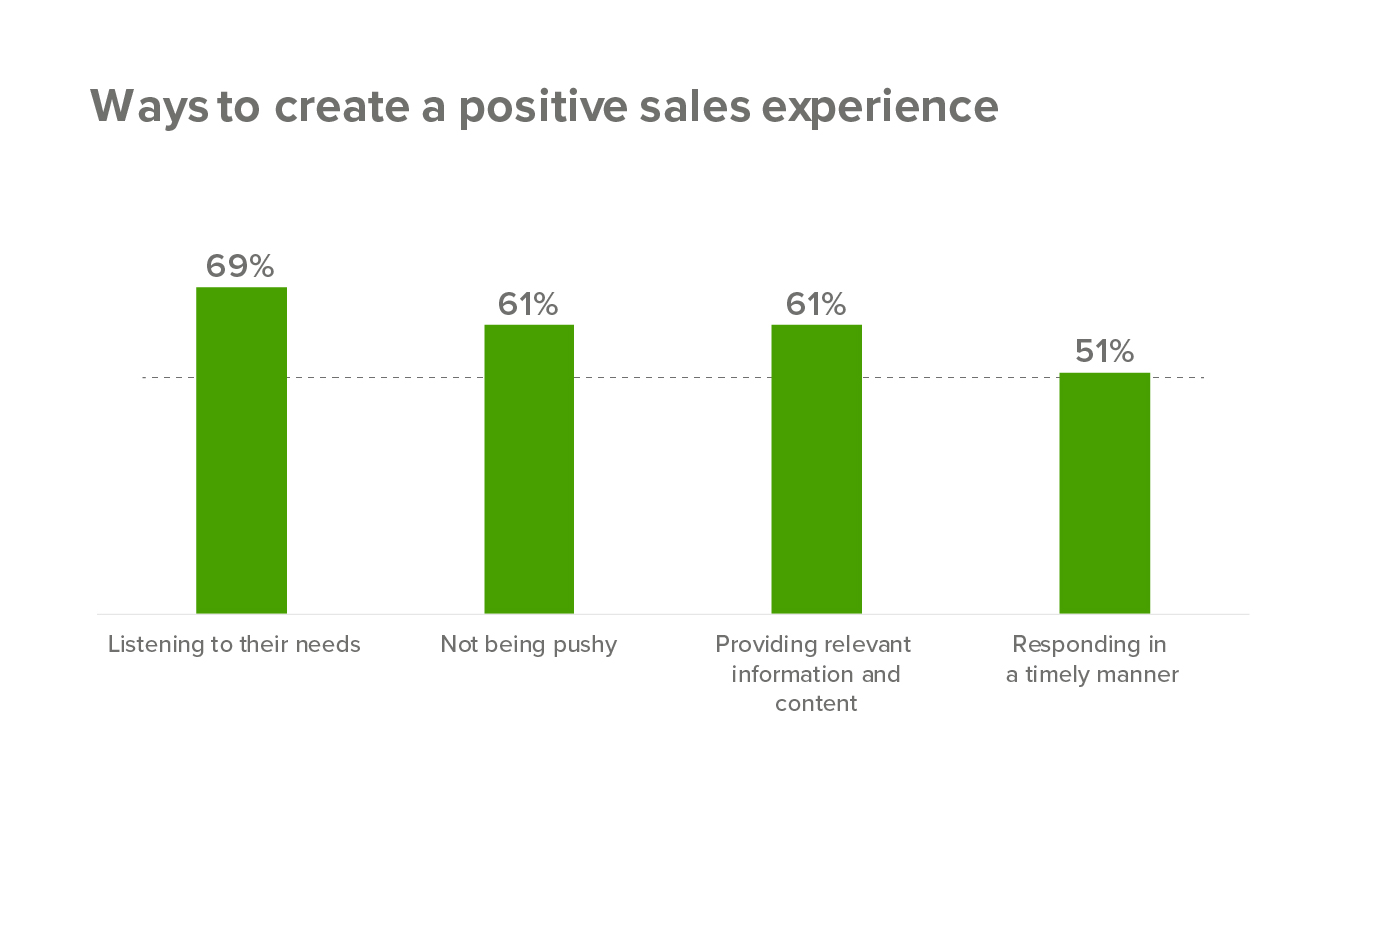 How to create a positive sales experience